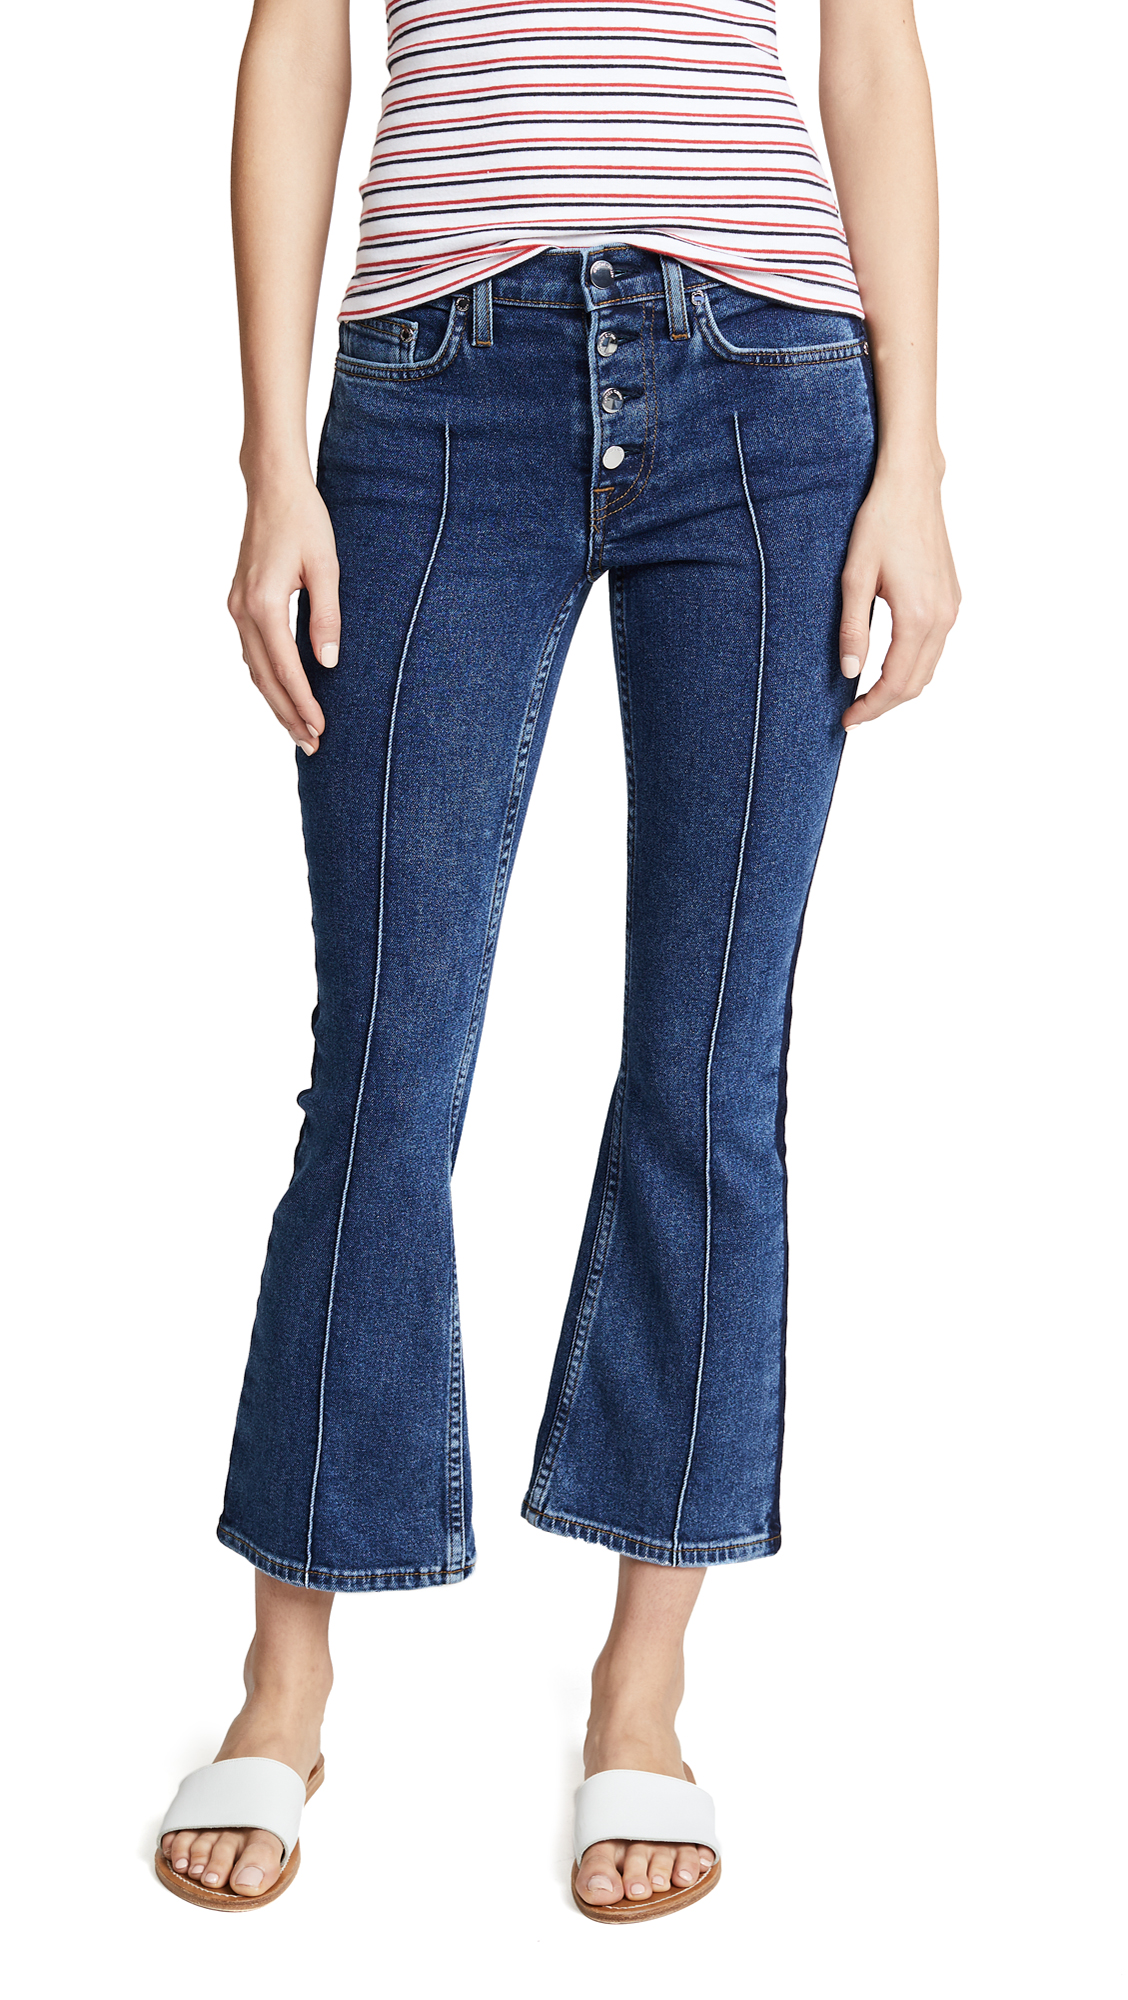 Cotton Citizen The Fly Flare Crop Jeans